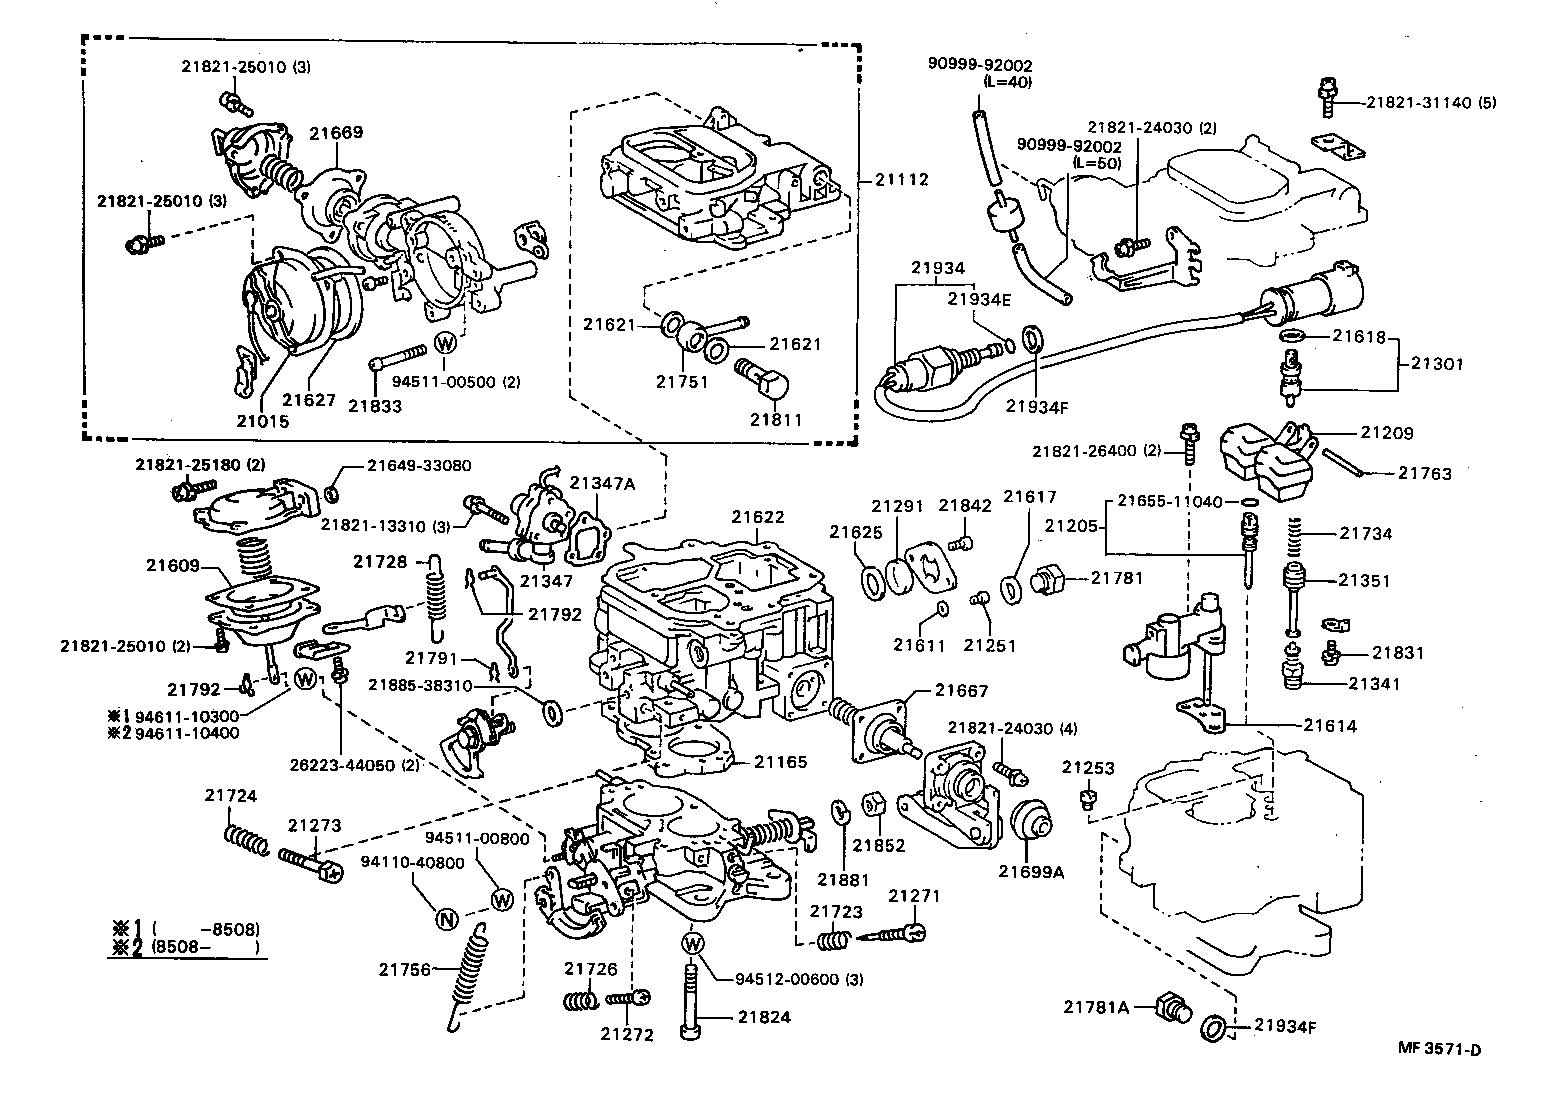 1985 Toyota Pickup Carburetor Diagram       Japan-parts Eu  Toyota     Images